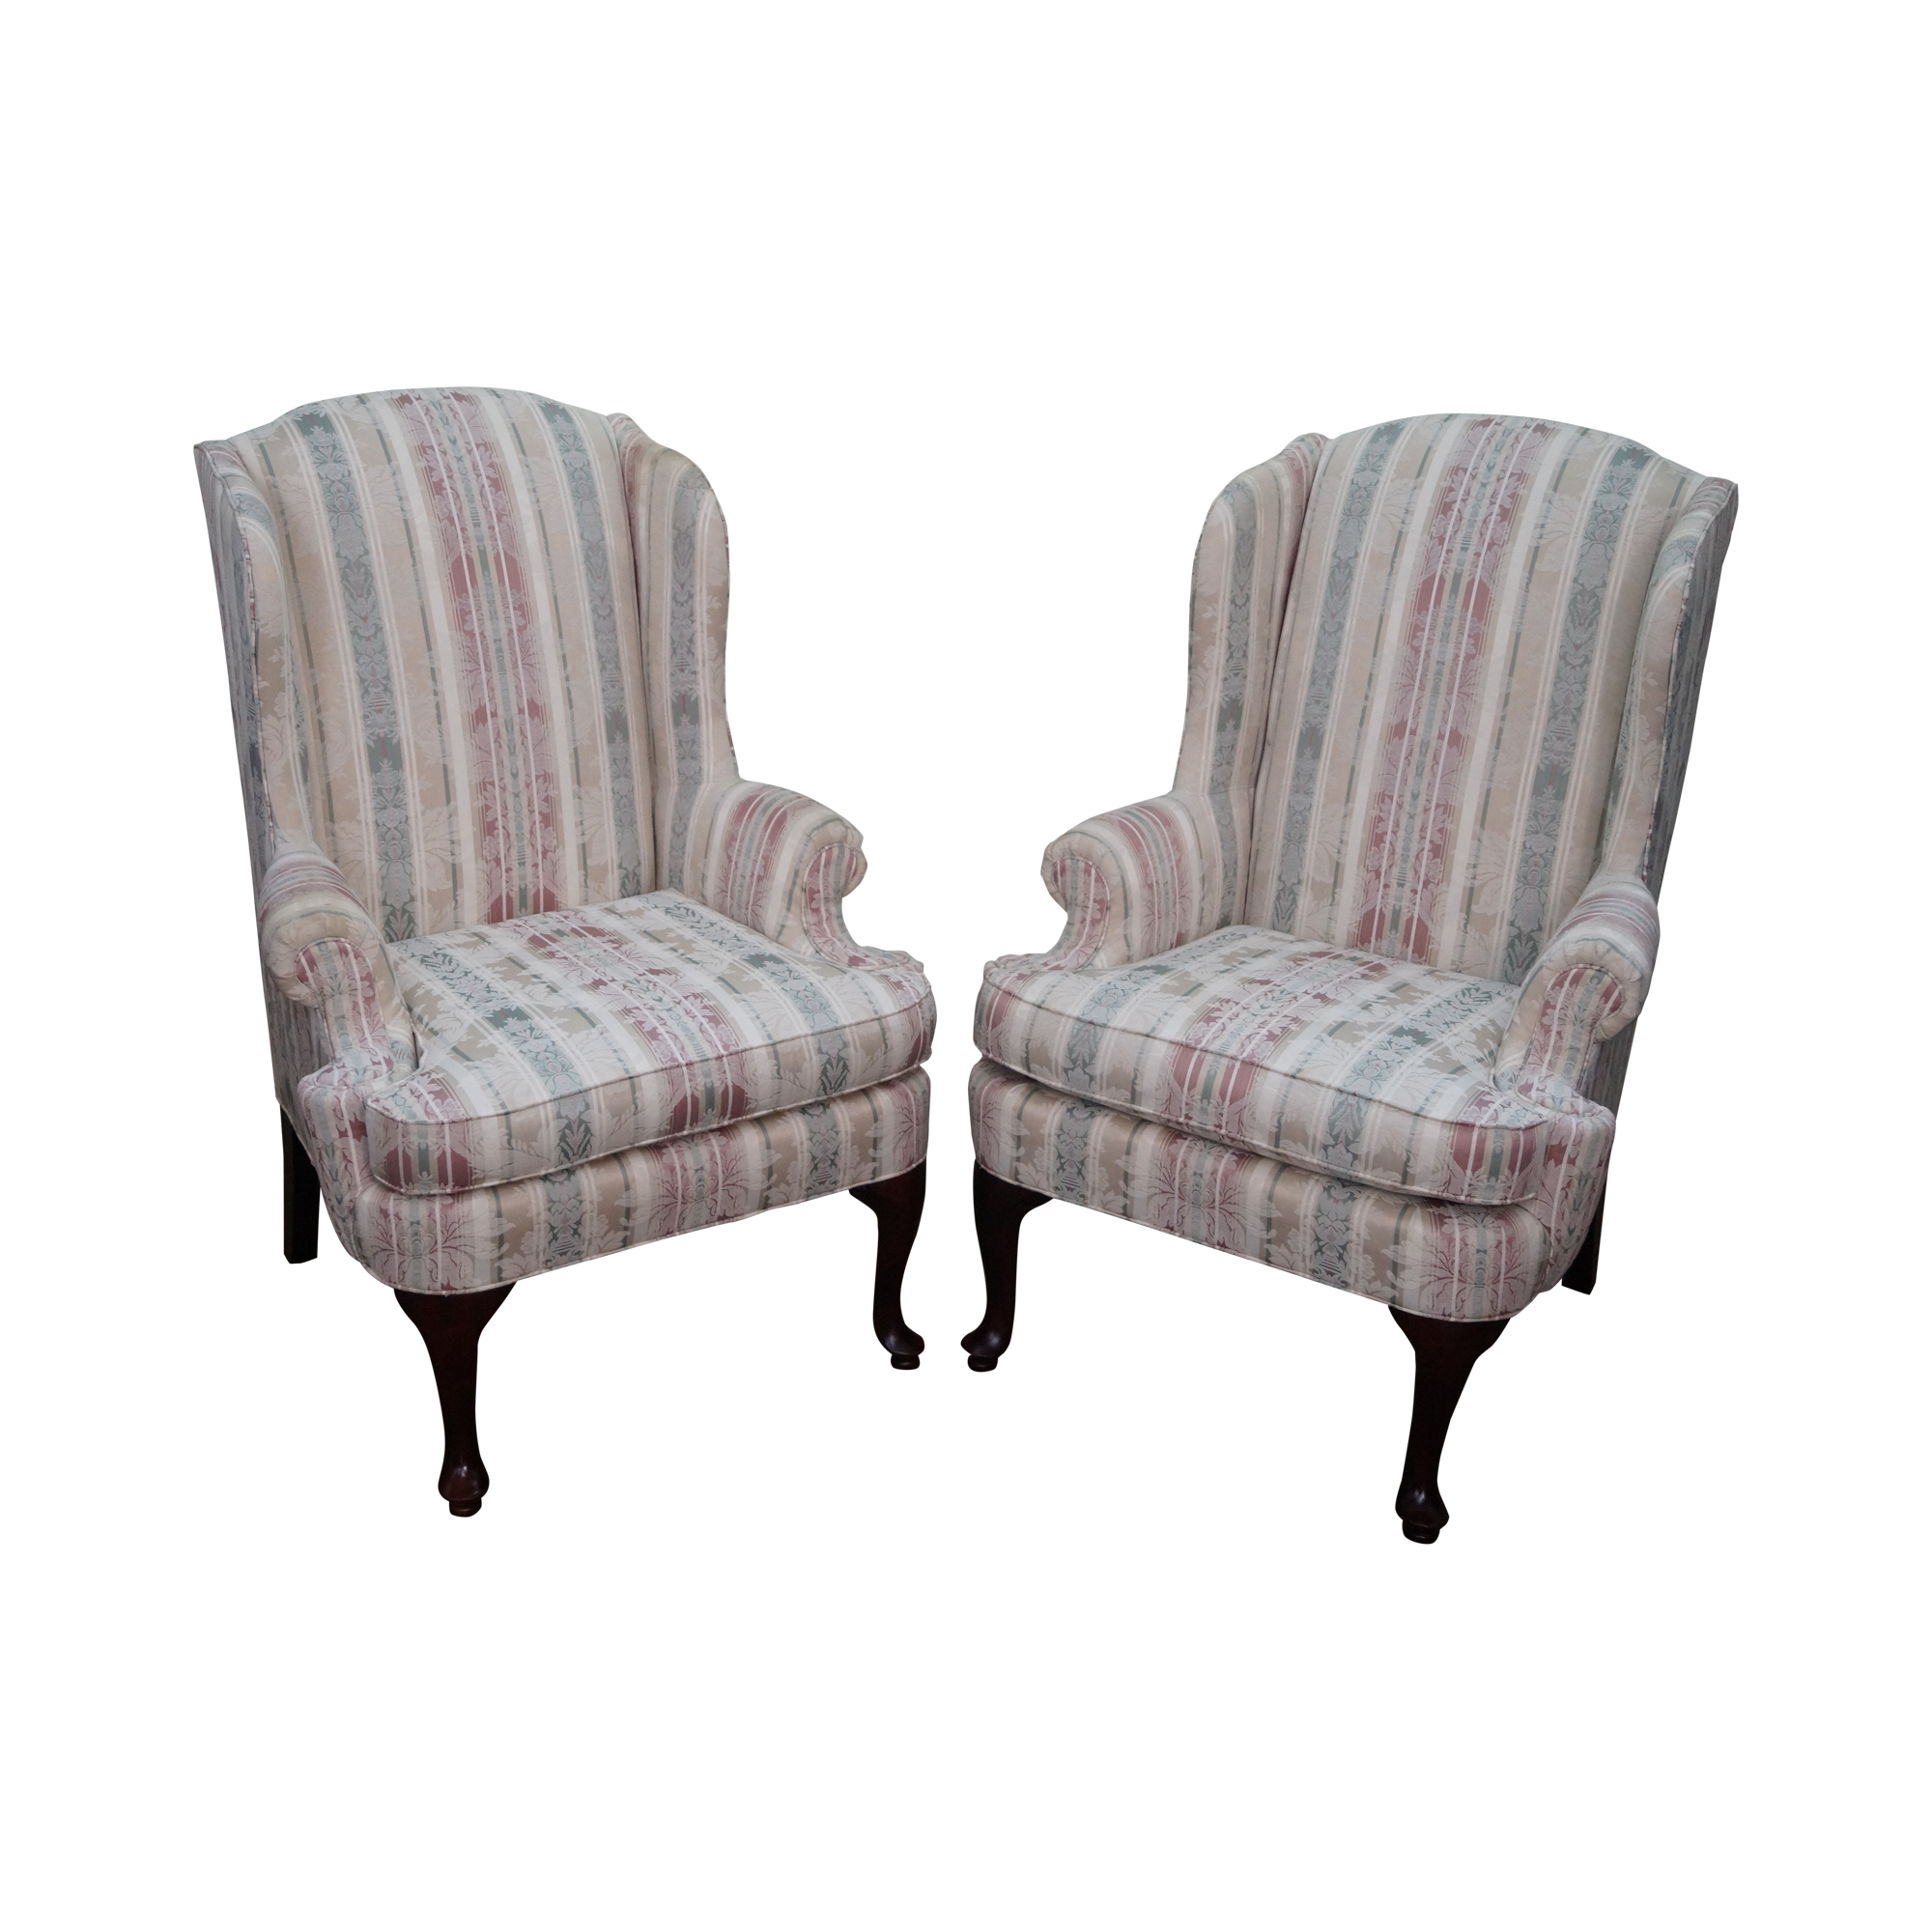 Attirant Thomasville Traditional Queen Anne Wing Chairs   2